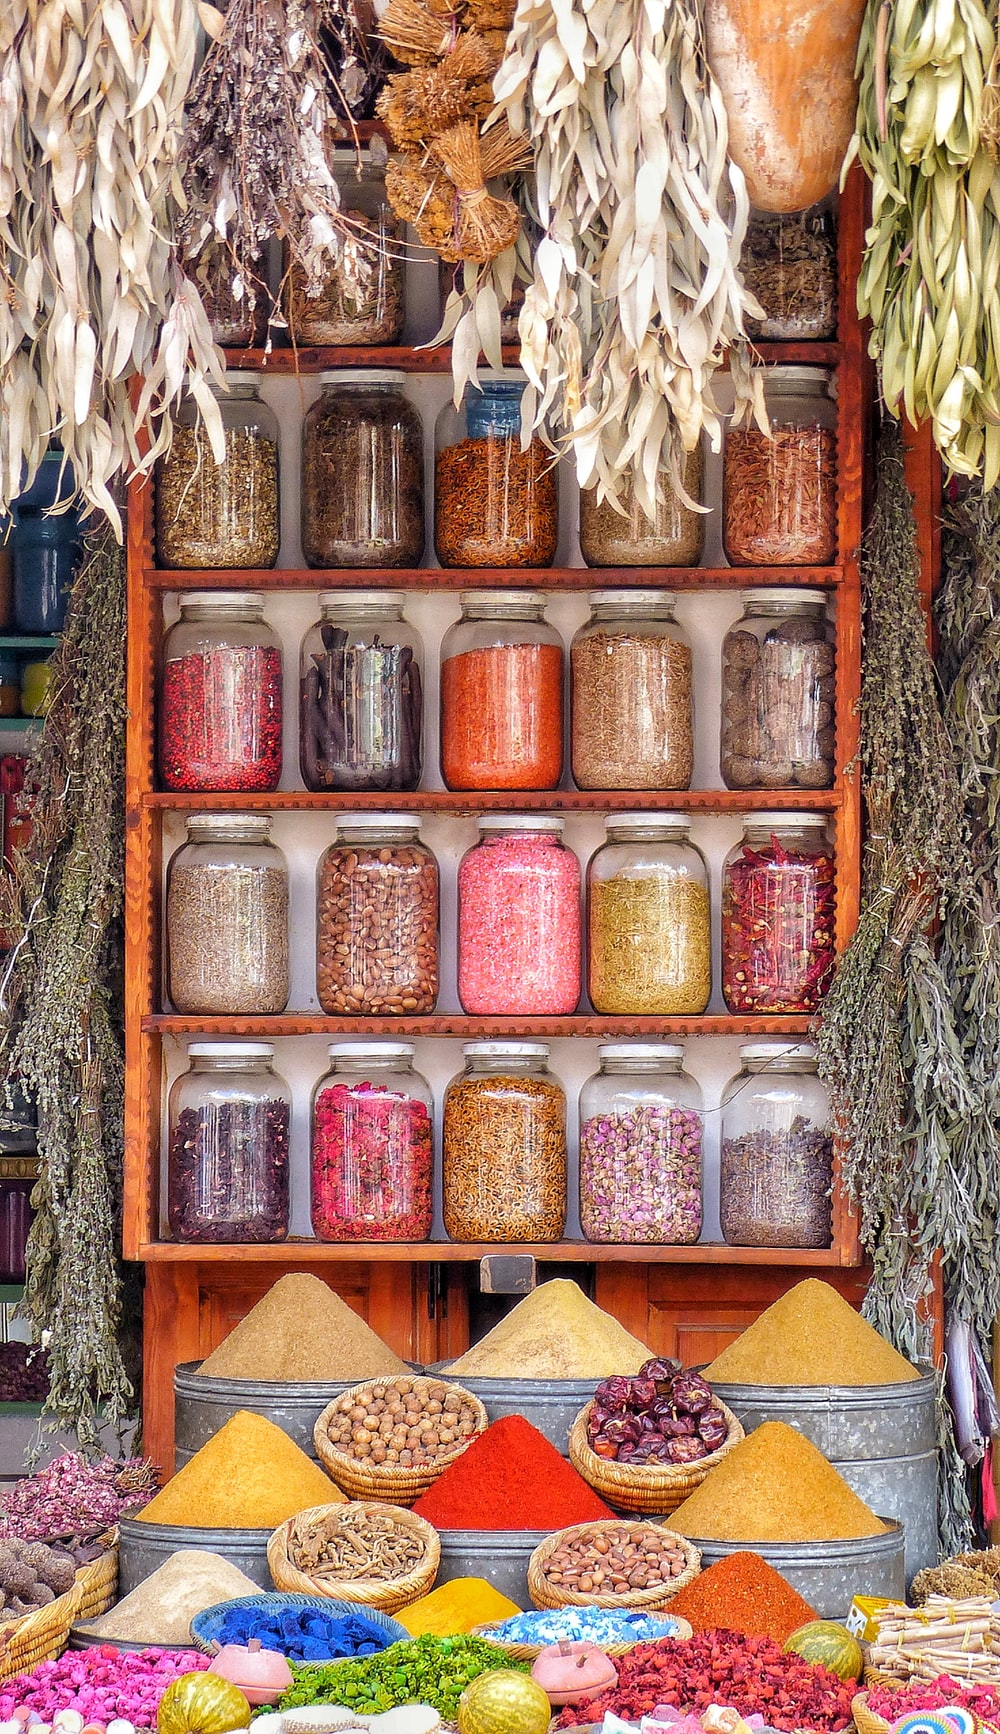 assorted spices on display